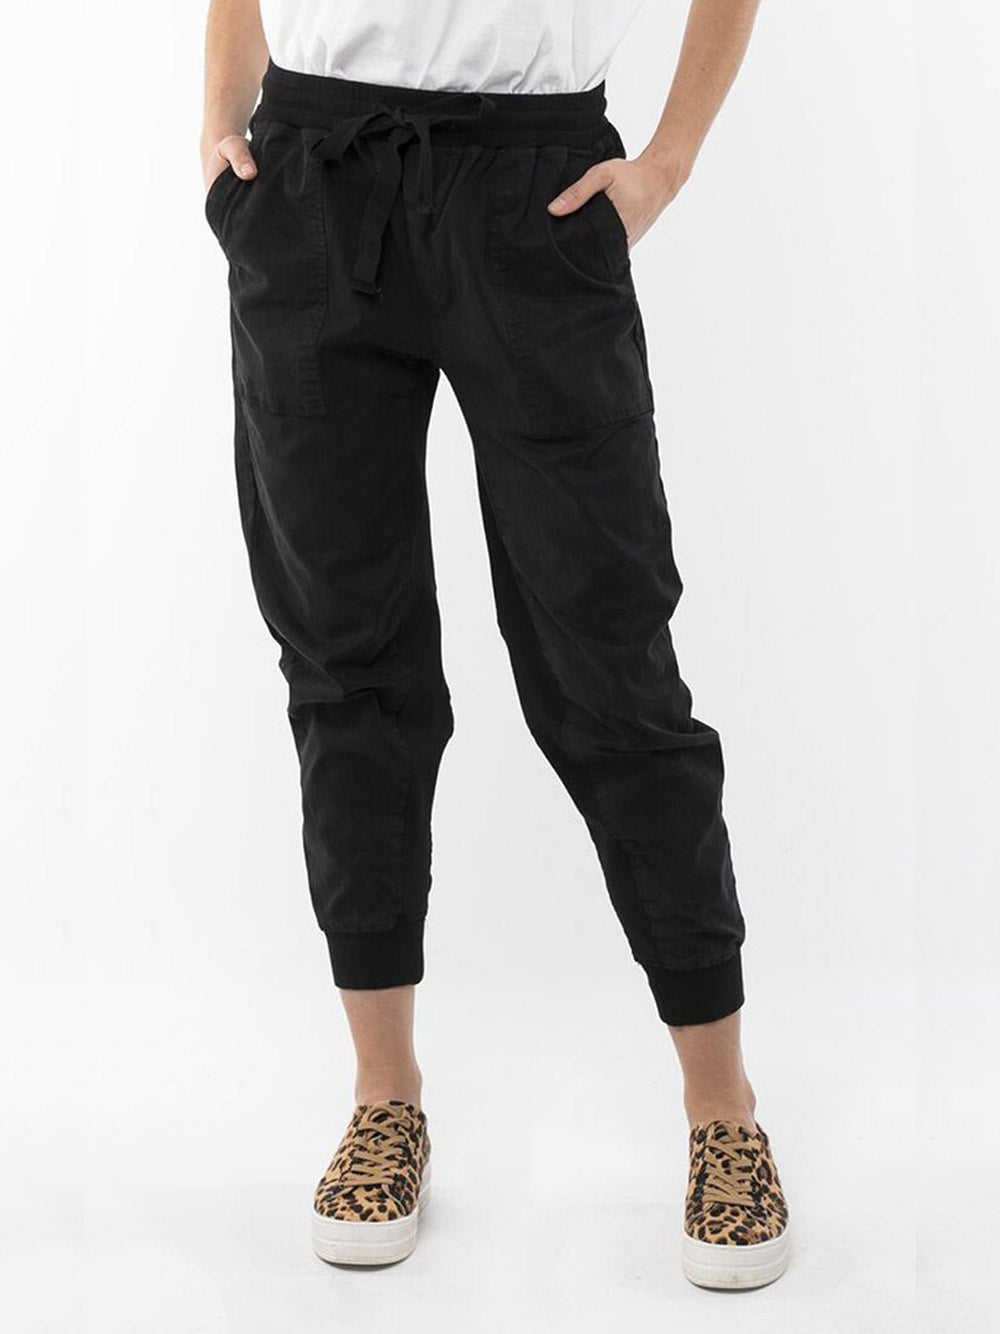 ELM LIFESTYLE Let Loose Jogger - Black